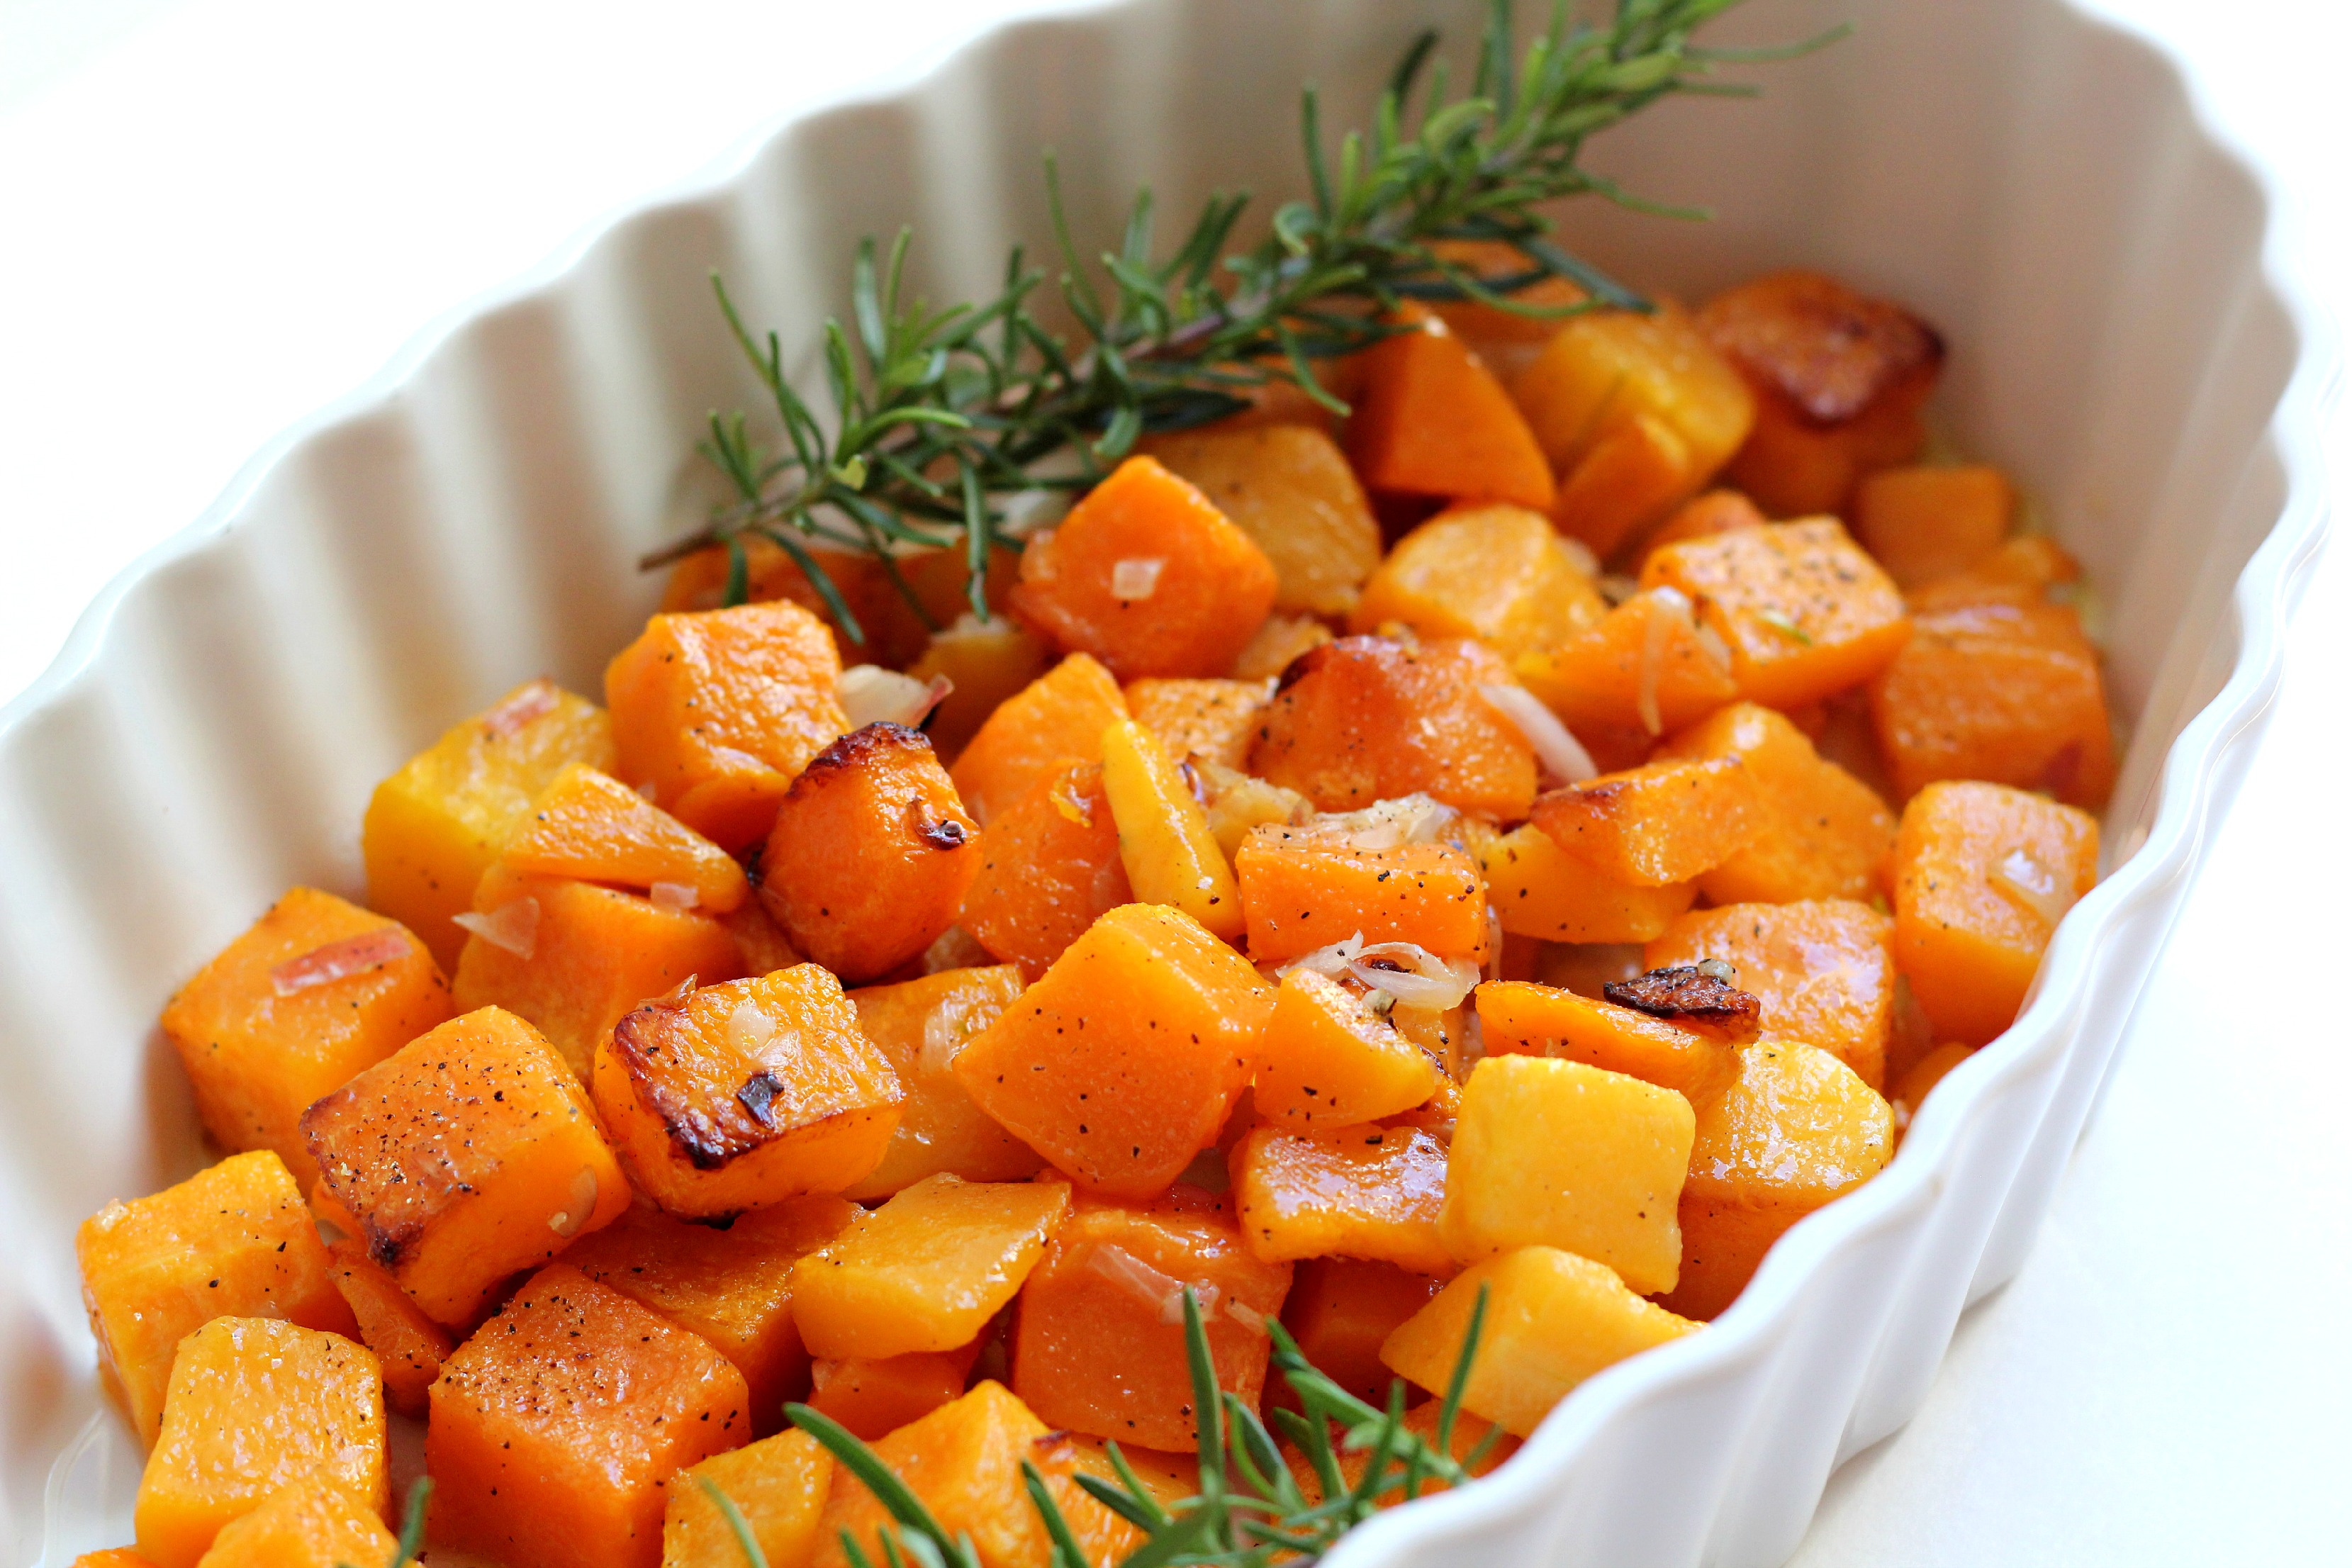 Shallot and Rosemary Roasted Butternut Squash - Bravo For Paleo